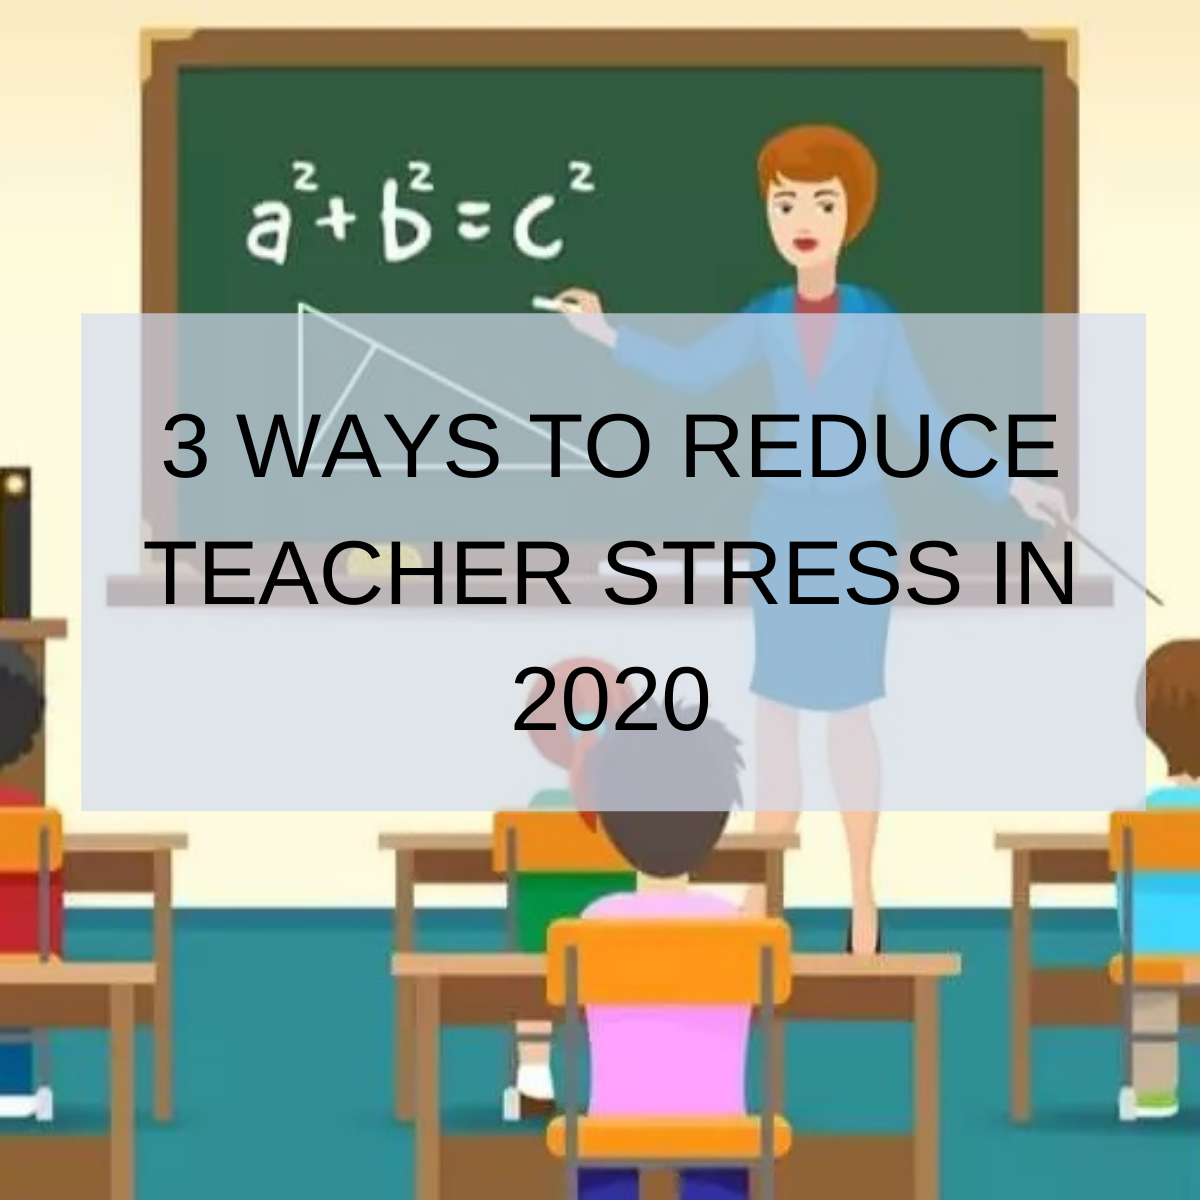 3 Ways To Reduce Teacher Stress In 2020